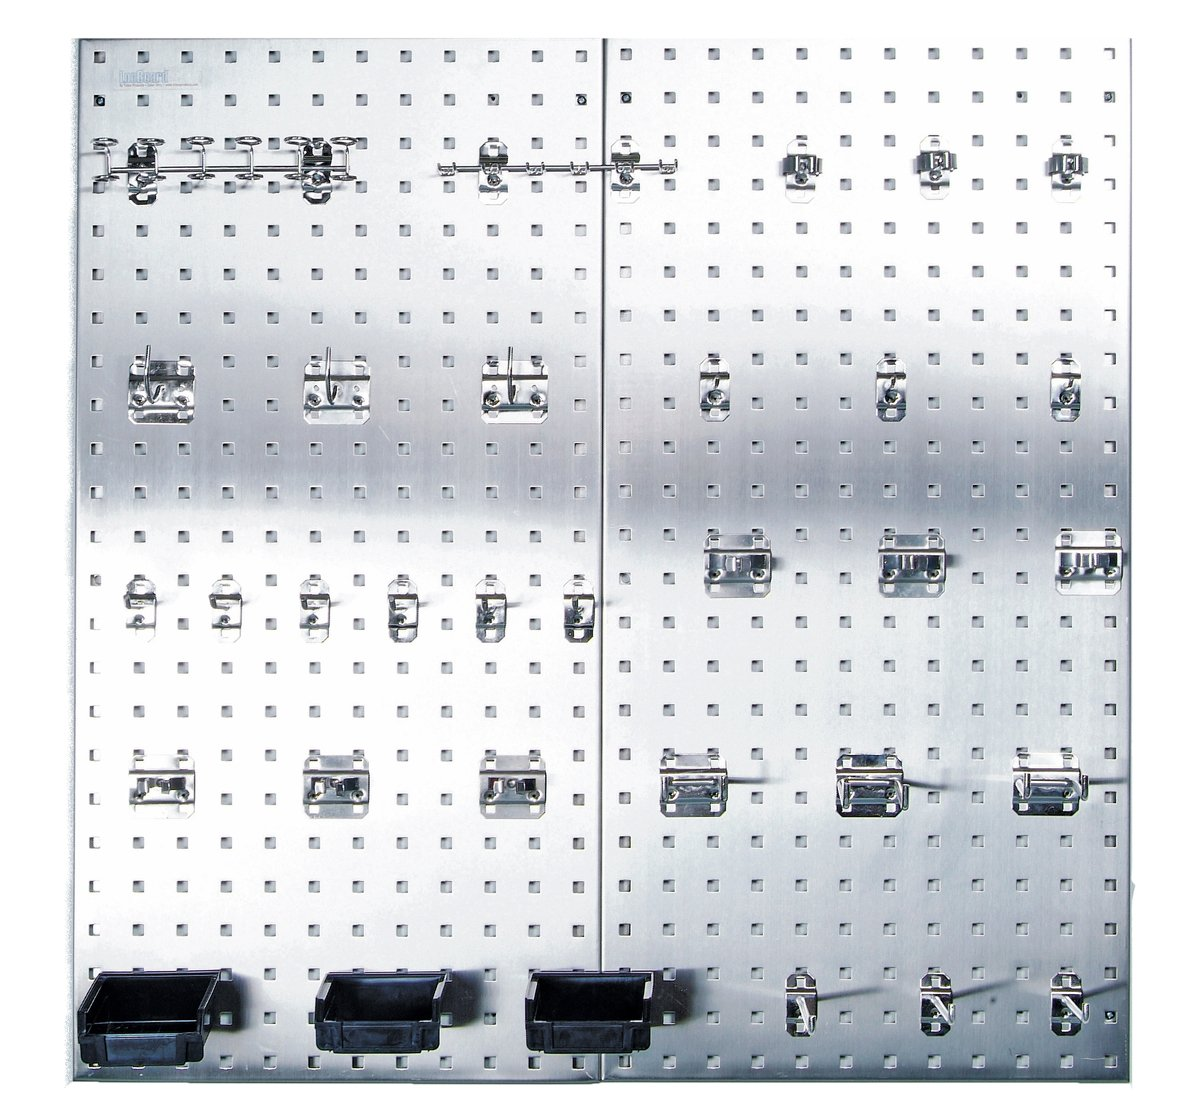 Triton Products LB18-SKit Stainless Steel LocBoard Assortment with Two 304 Stainless Steel Square Hole Pegboards with 32 piece Stainless LocHook Assortment and 3 Plastic Hanging Bins by Stainless Steel LocBoard